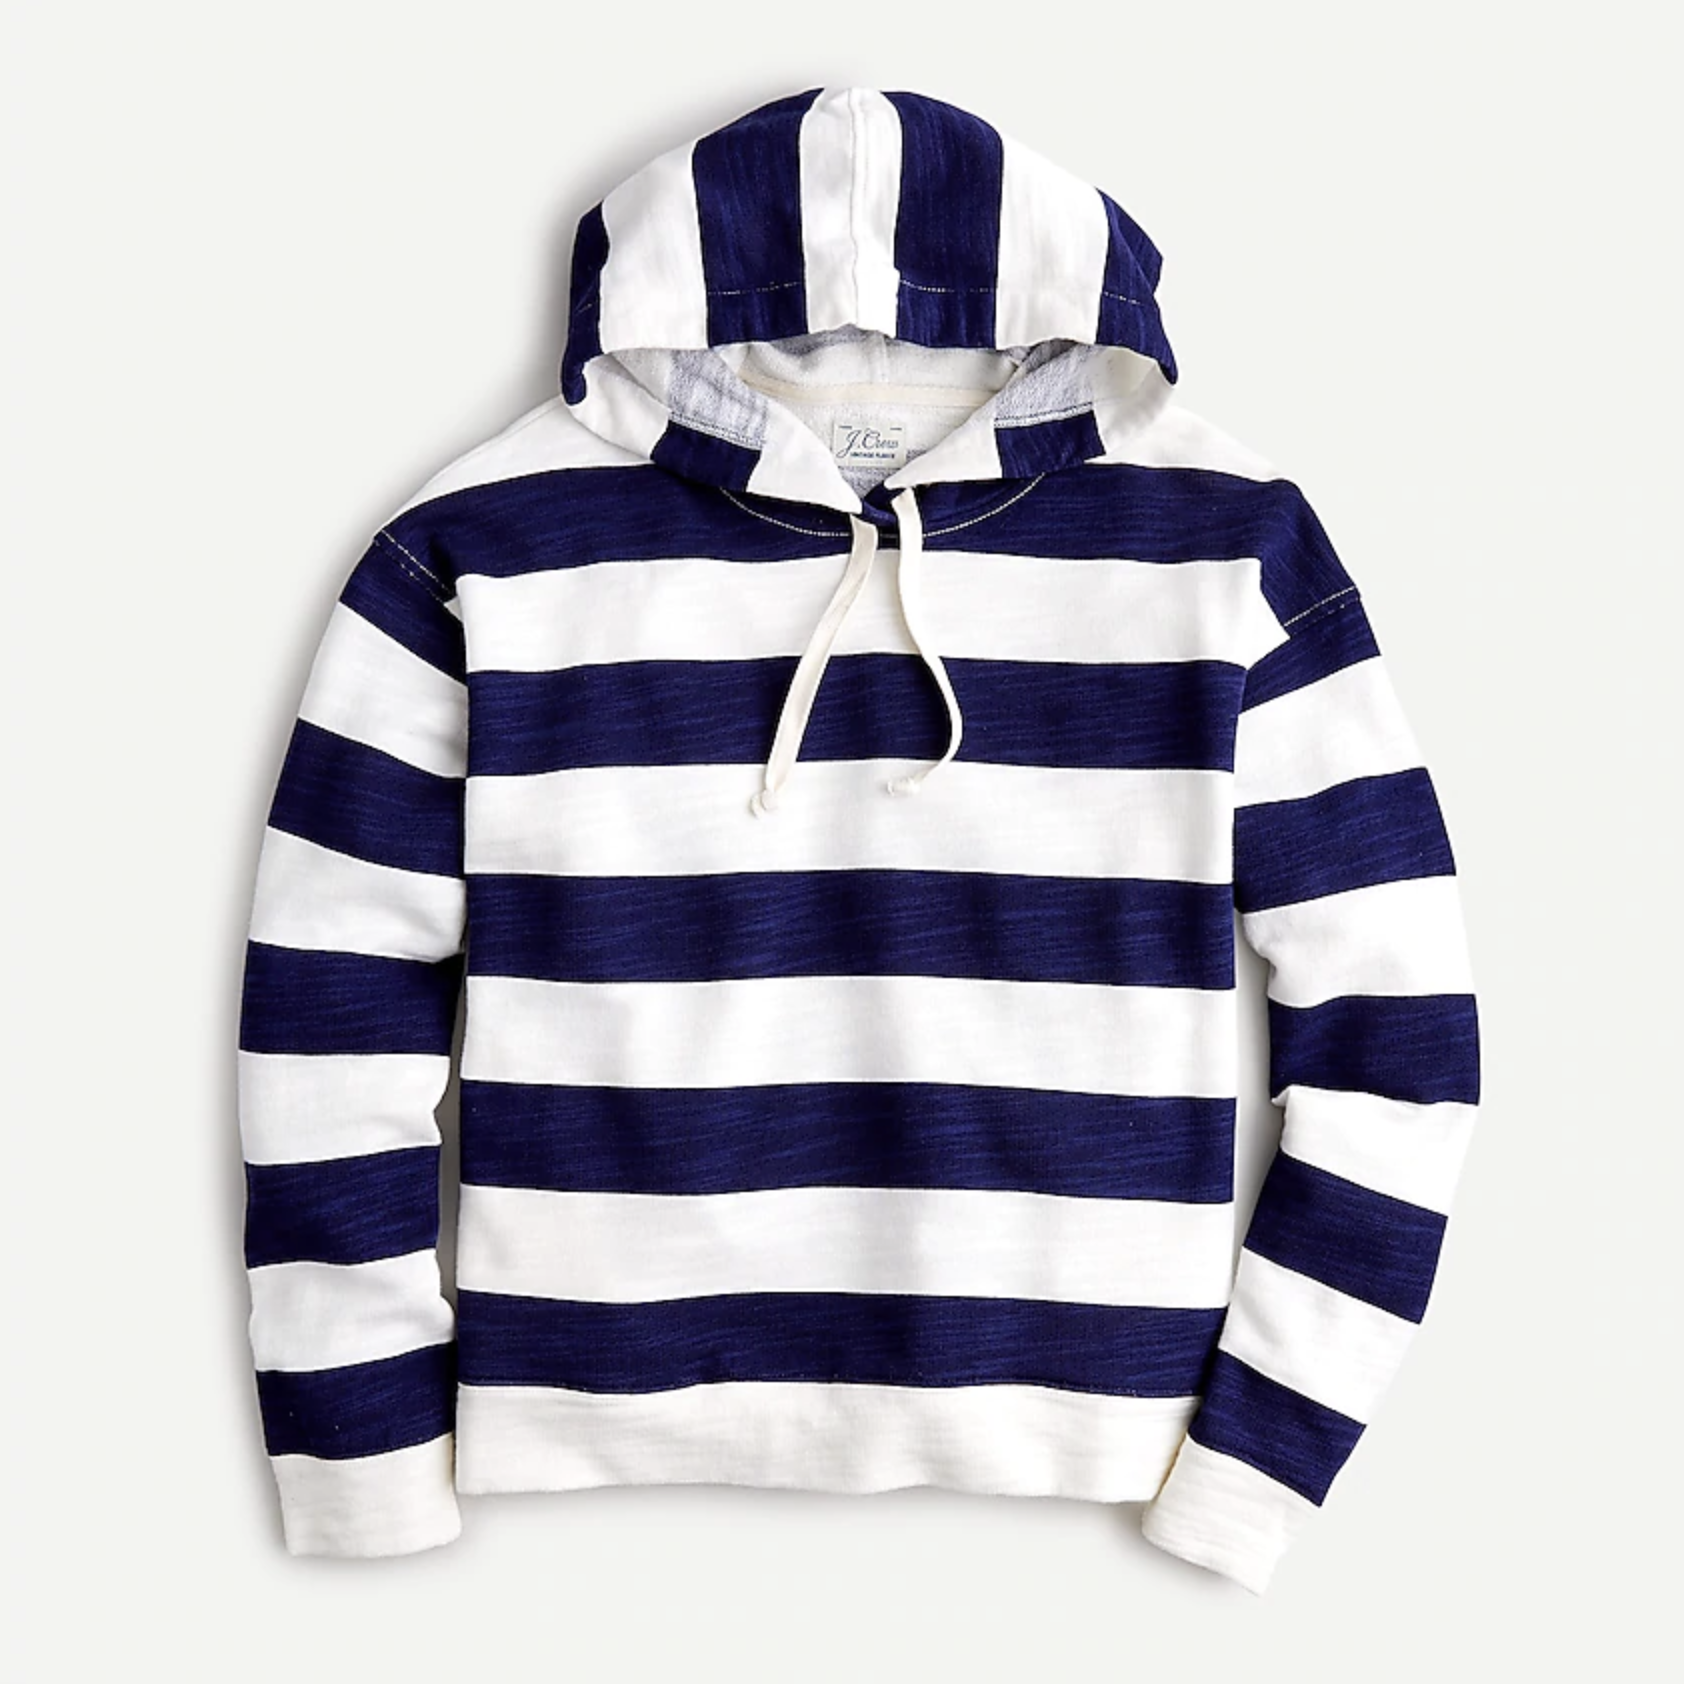 J.Crew Steals Kelly in the City Life, Style, and